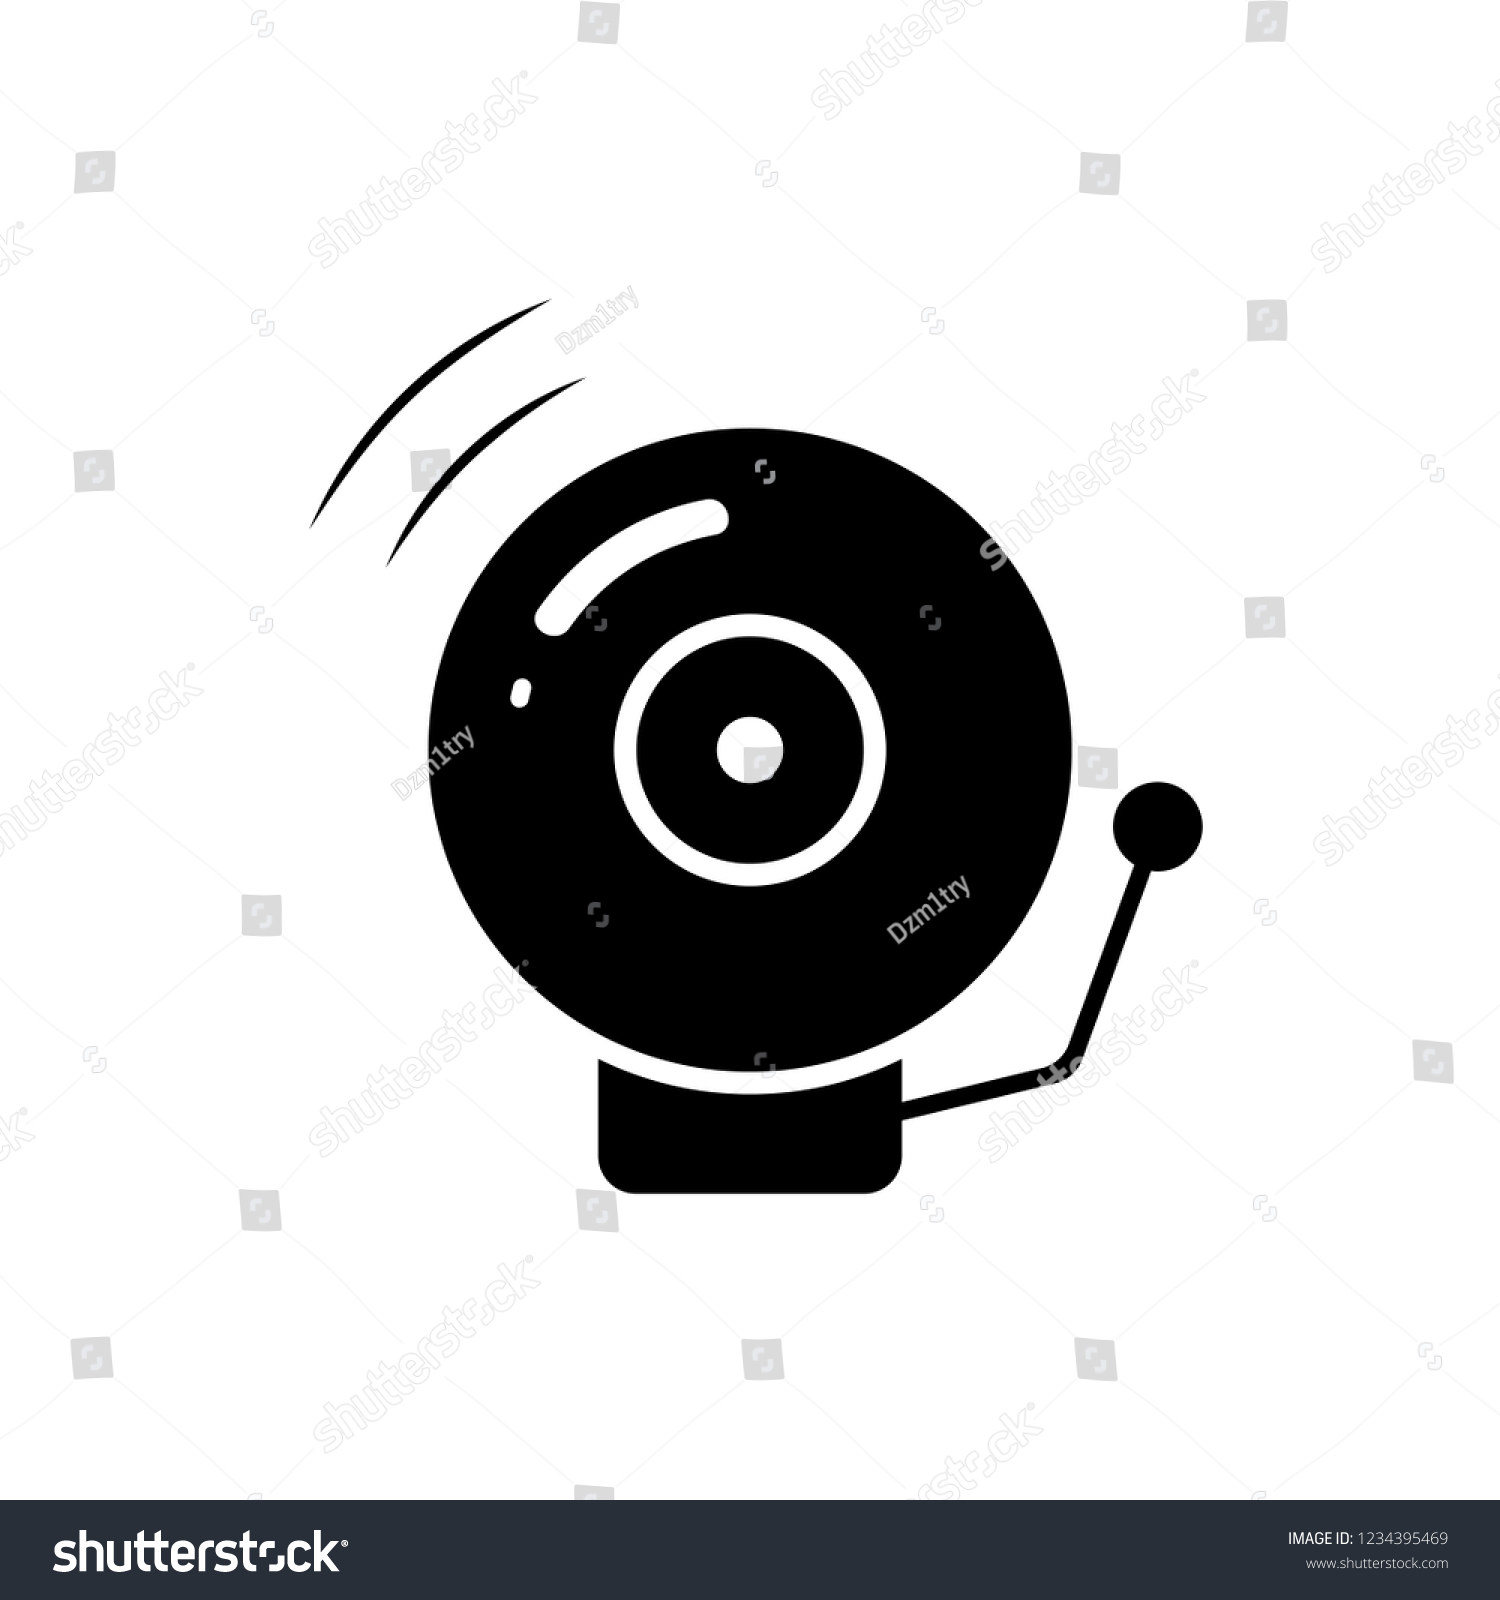 hight resolution of fire alarm bell silhouette icon clipart image isolated on white background